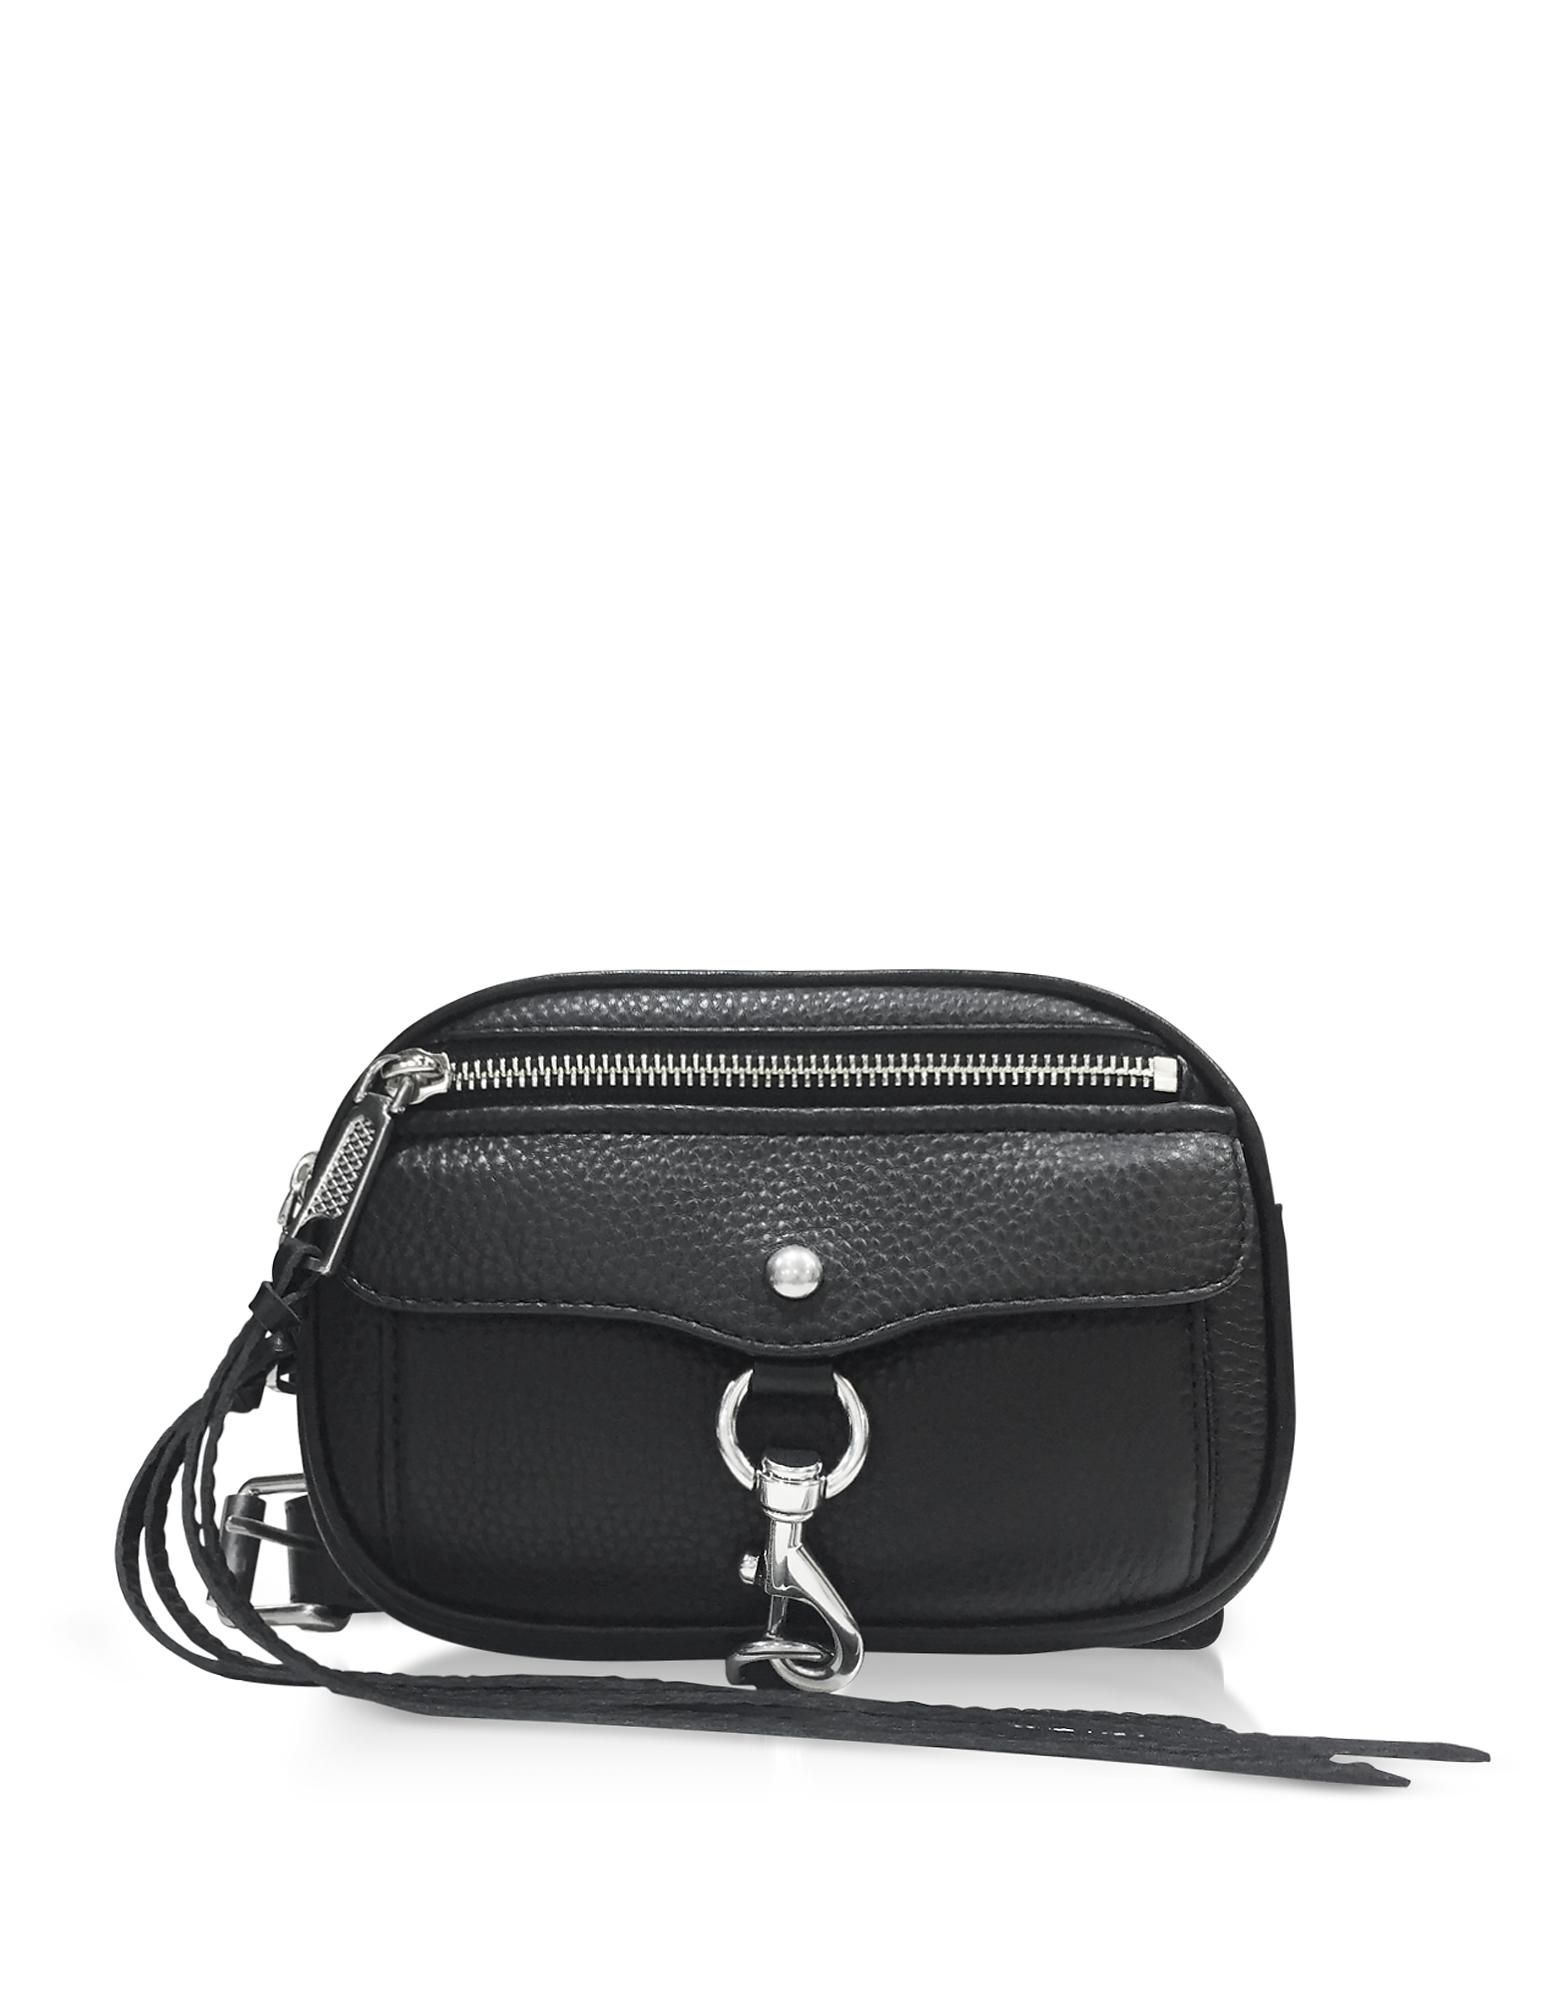 6a249fd909c9 rebecca-minkoff-black-Pebbled-Leather-Blythe-Belt-Bag.jpeg